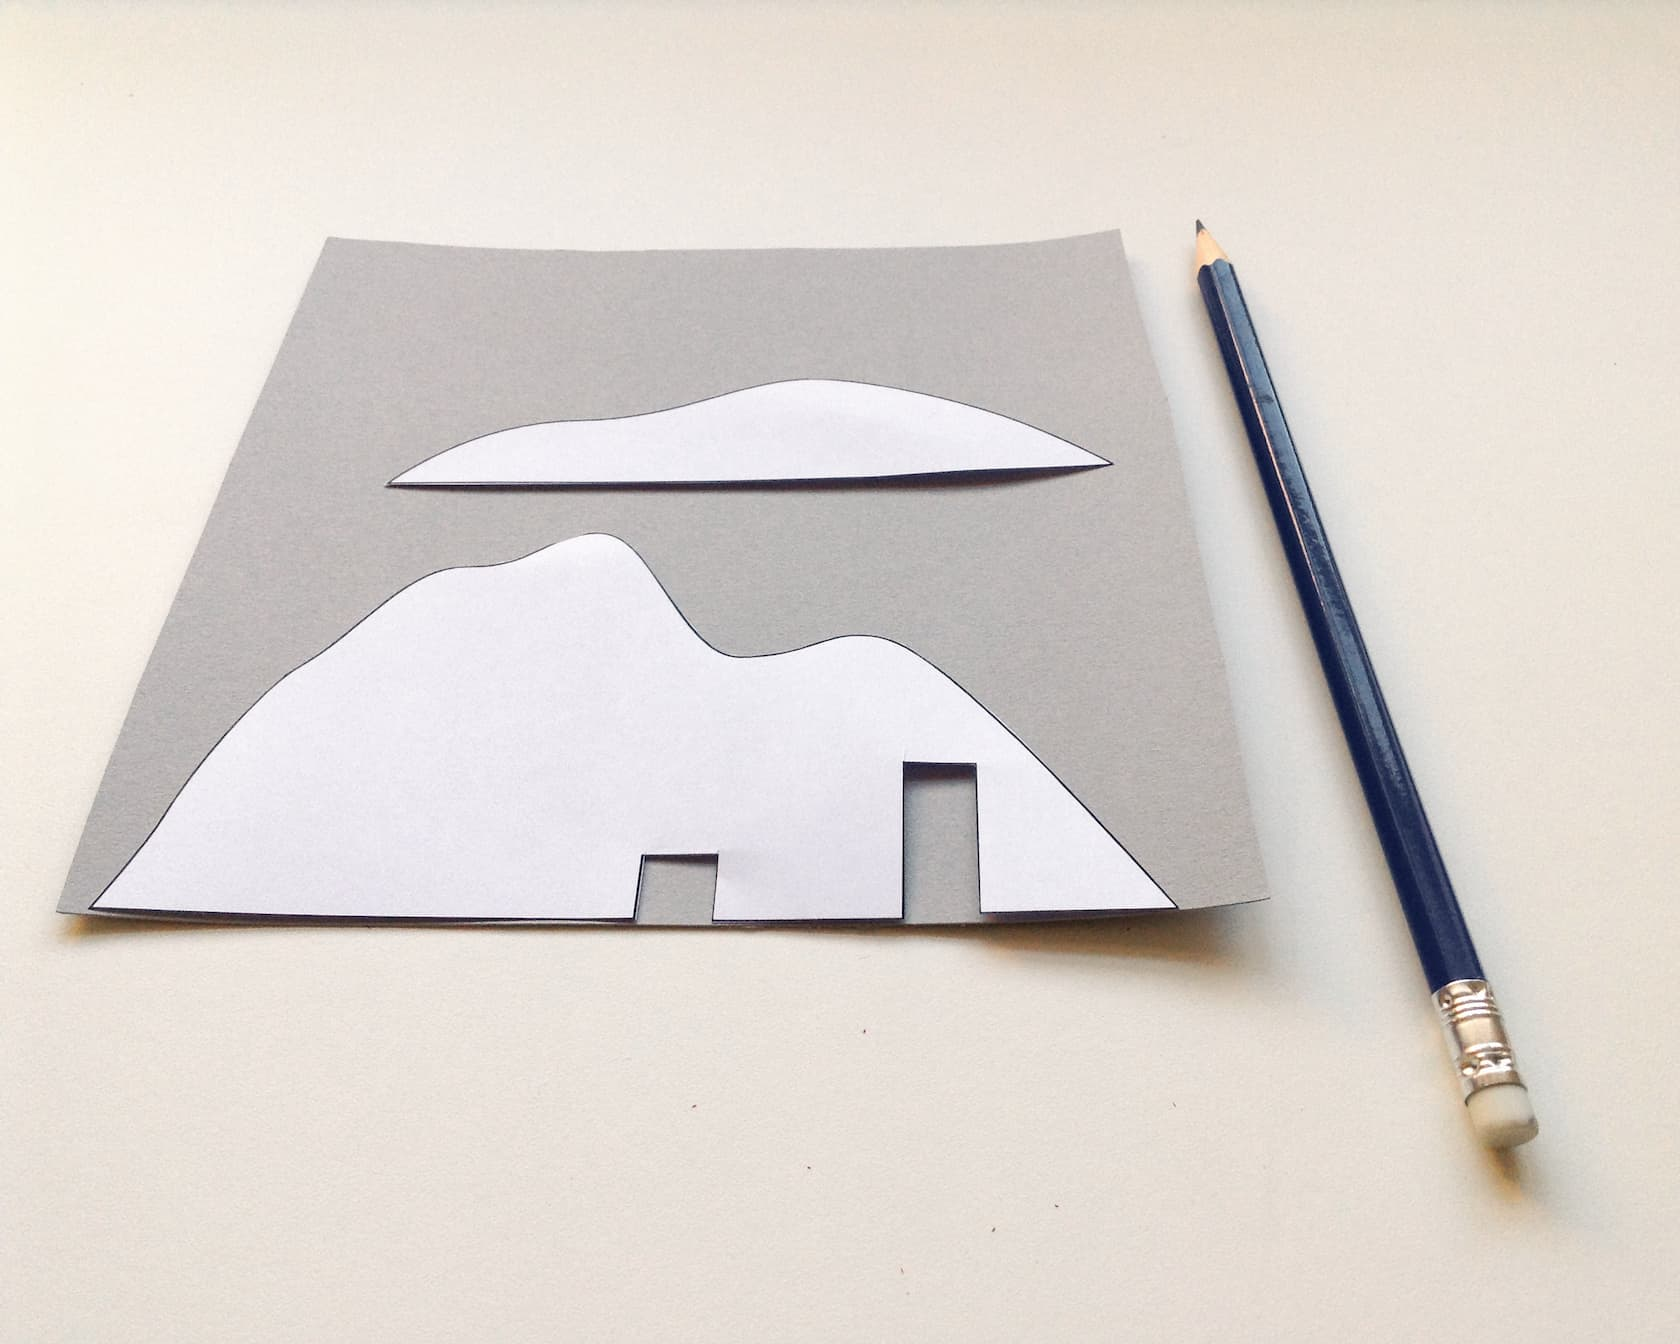 Use the mountain shapes as a stencil onto the grey card